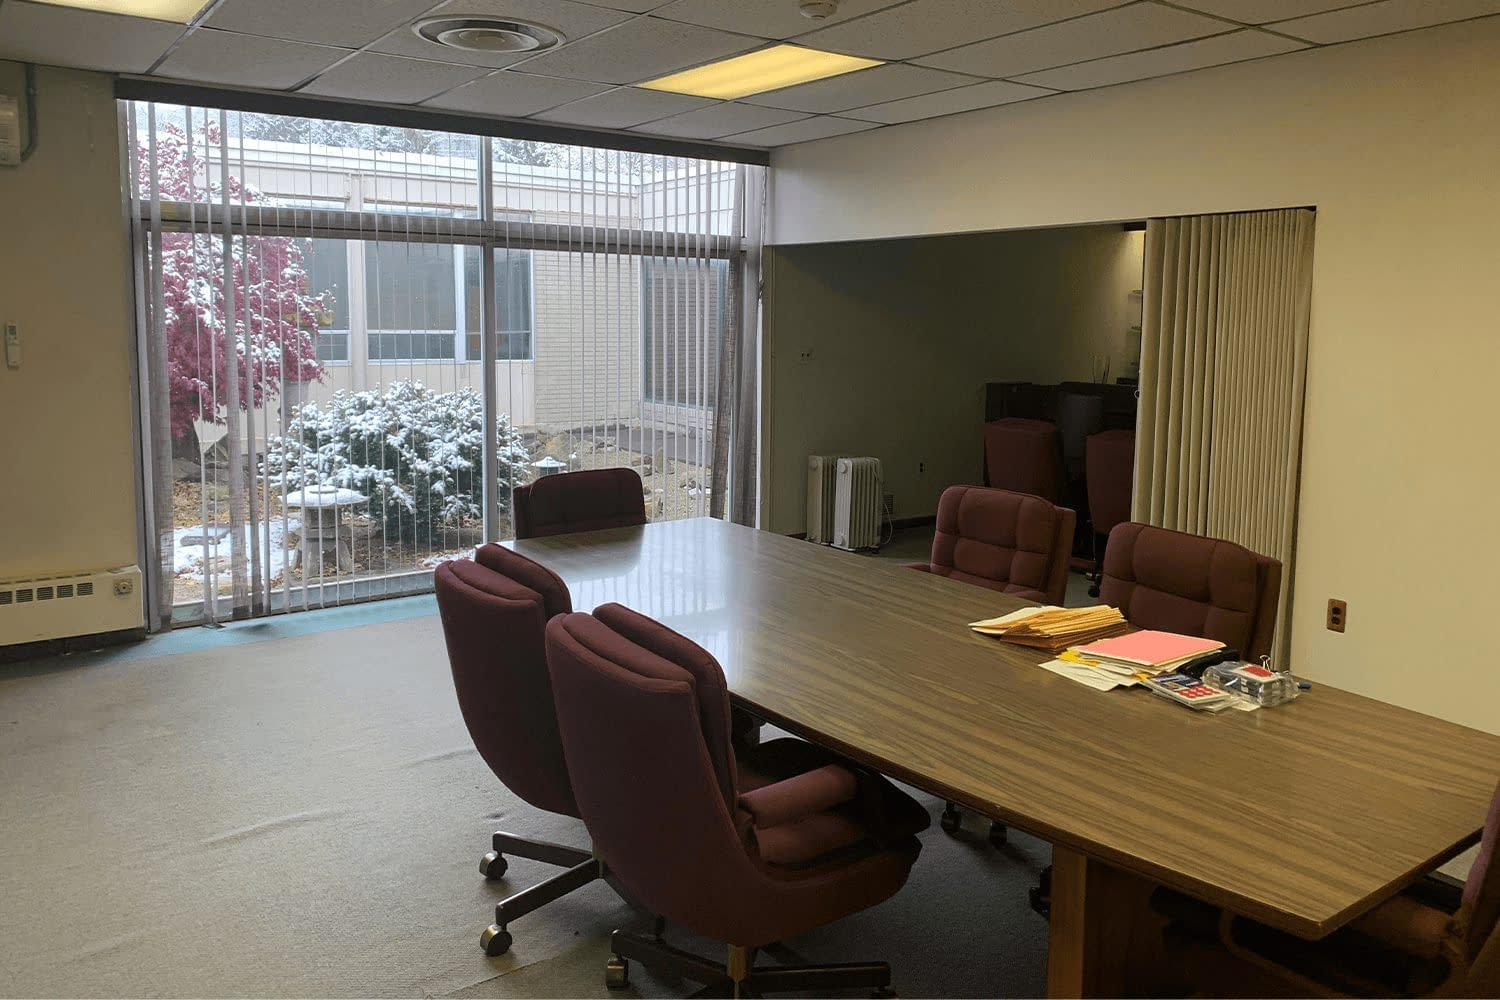 Conference room with a table and chairs and floor-to-ceiling windows